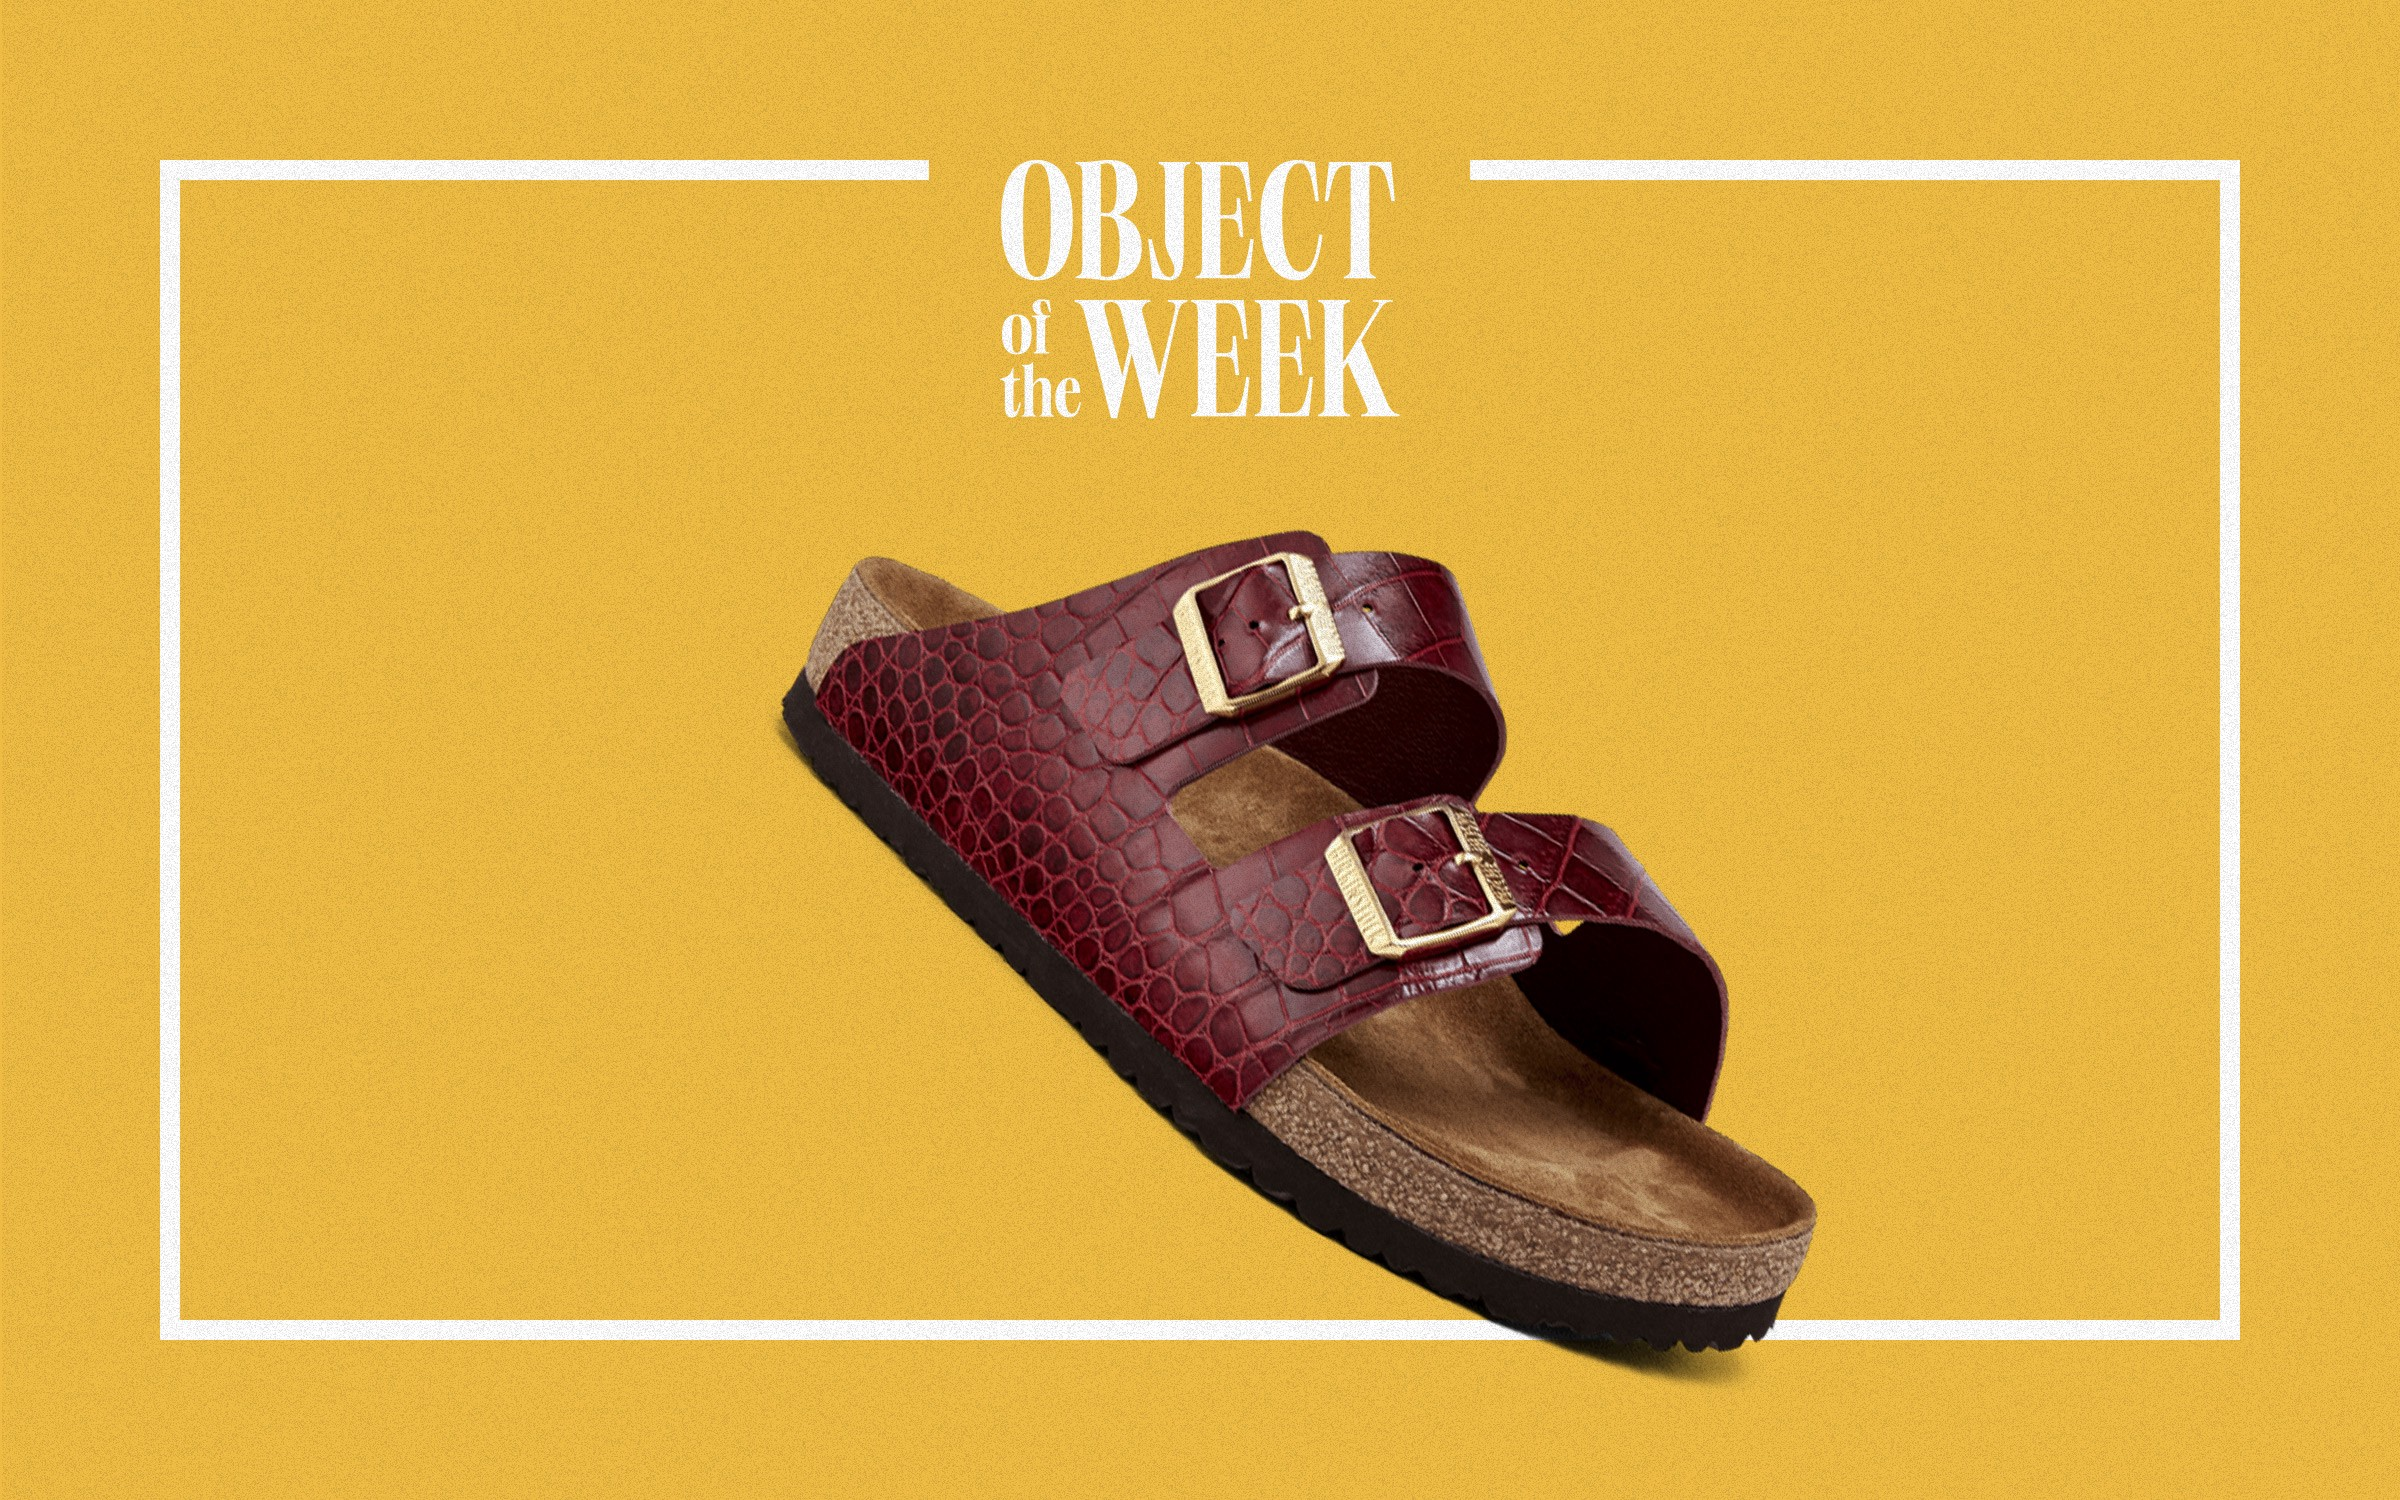 """A Birkinstock sandal, with the straps made of recycled Birkin bags, below the text """"Object of the Week""""."""